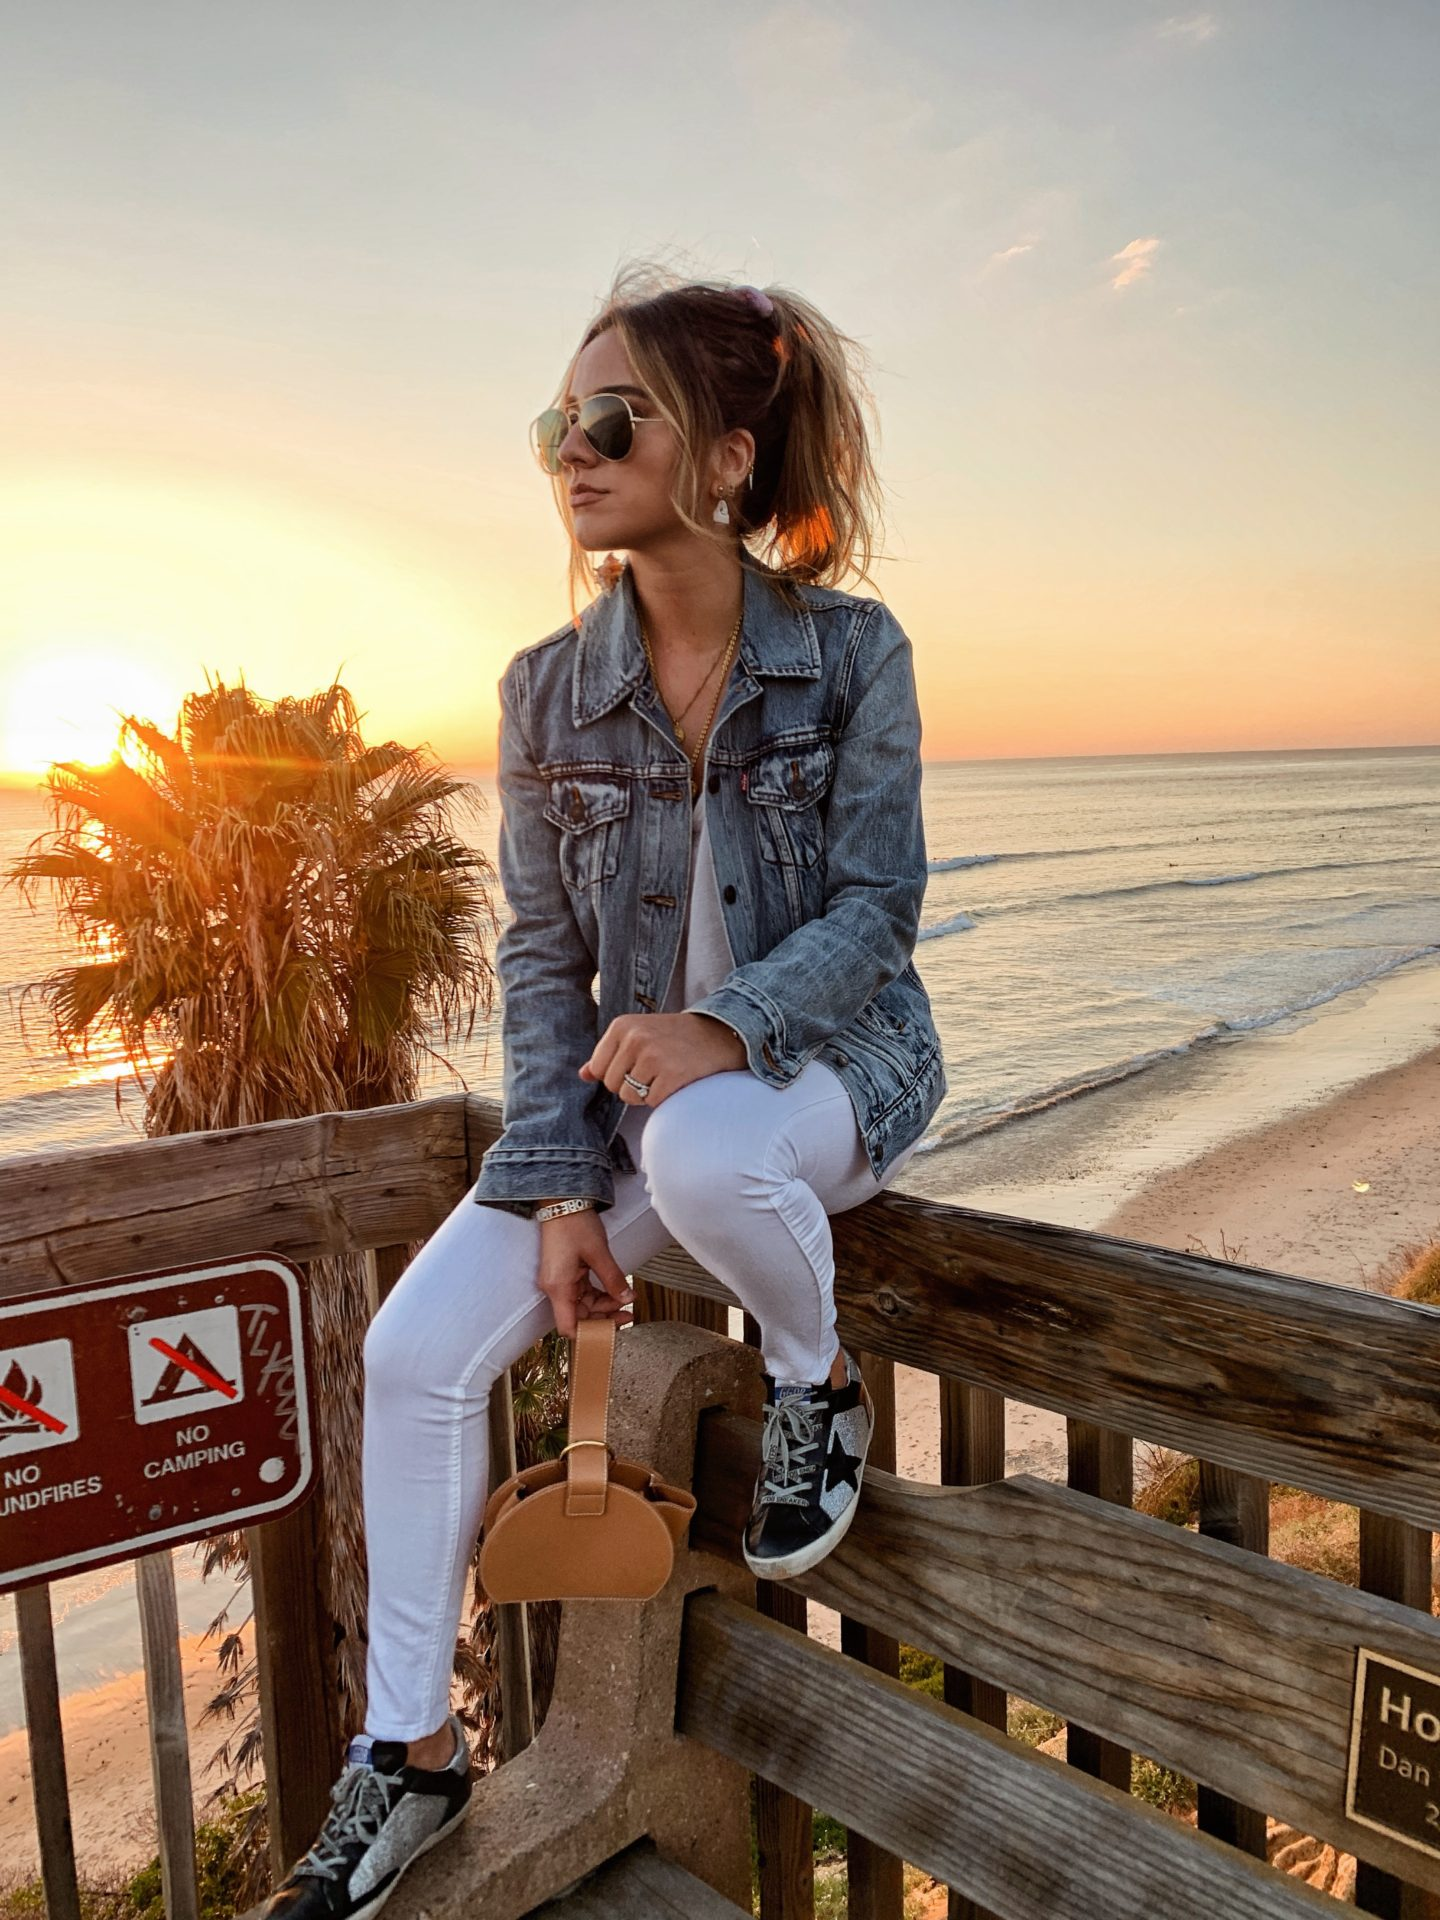 Best places to set up for sunset in San Diego County